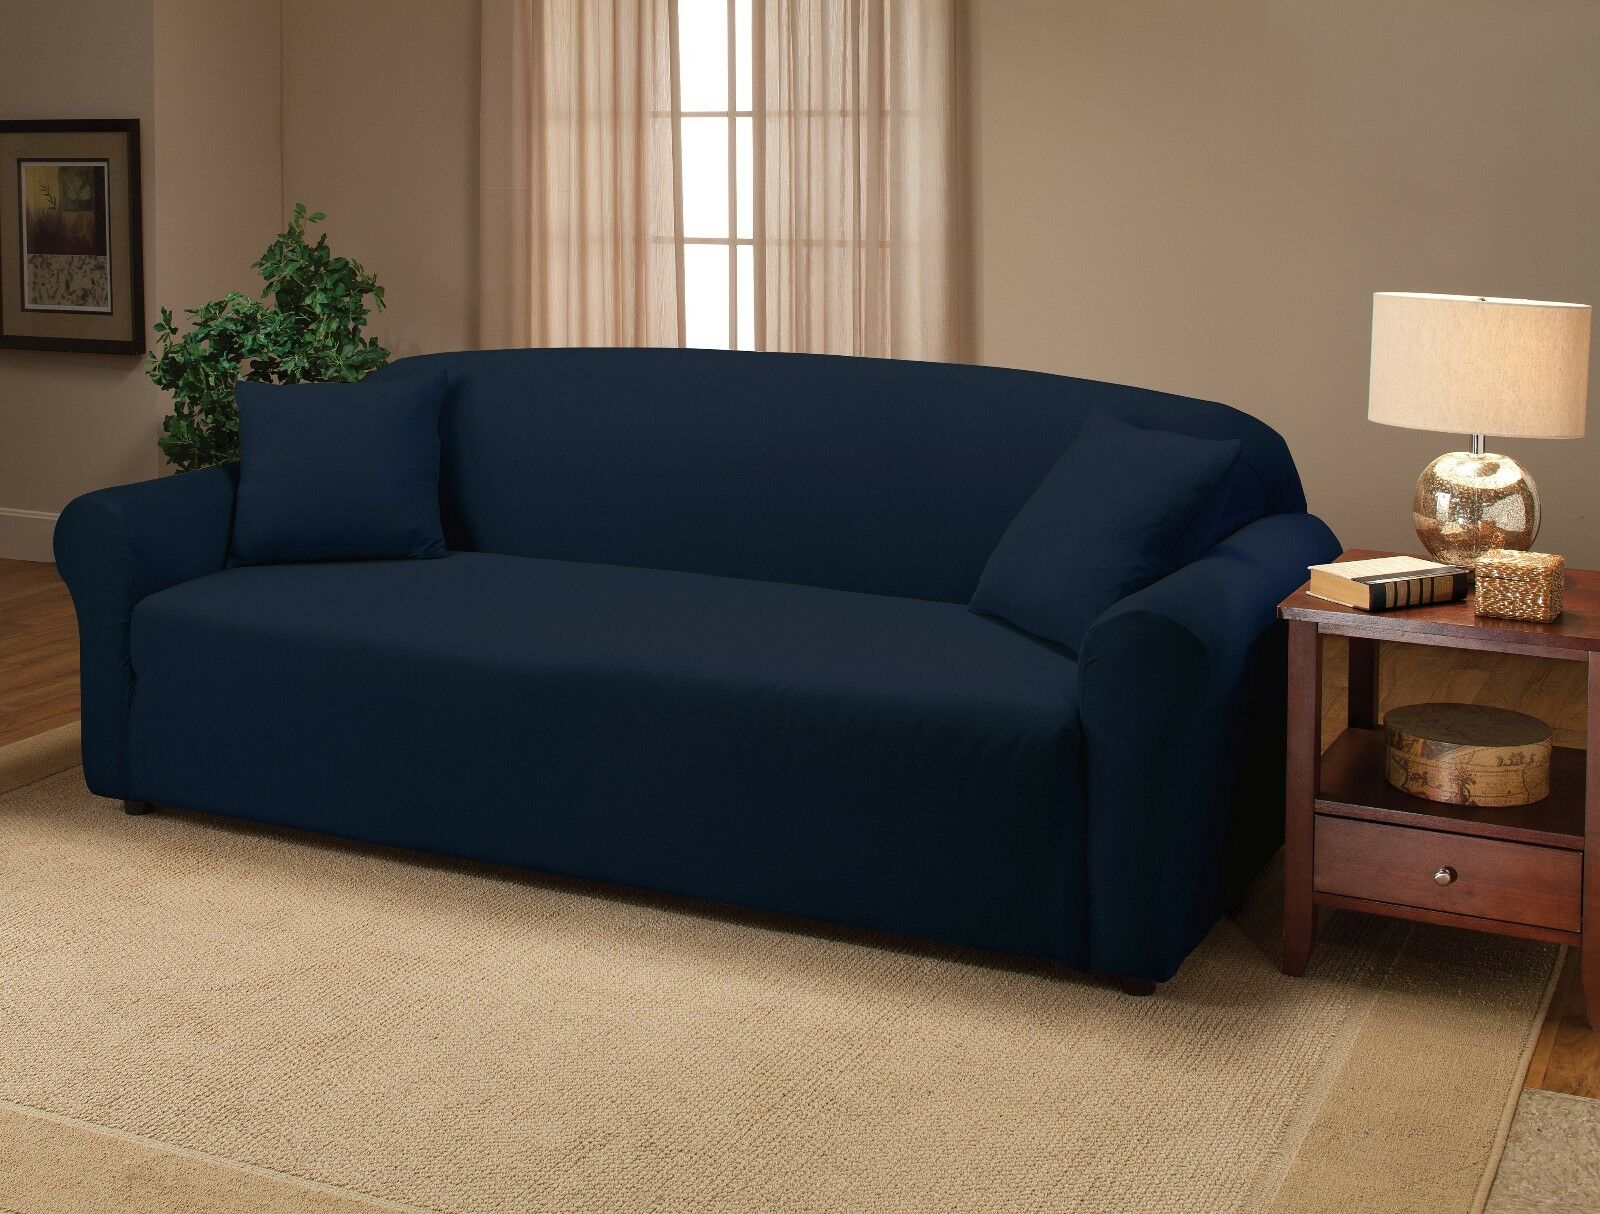 navy blue jersey couch stretch slipcover furniture covers chair loveseat sofa ebay. Black Bedroom Furniture Sets. Home Design Ideas